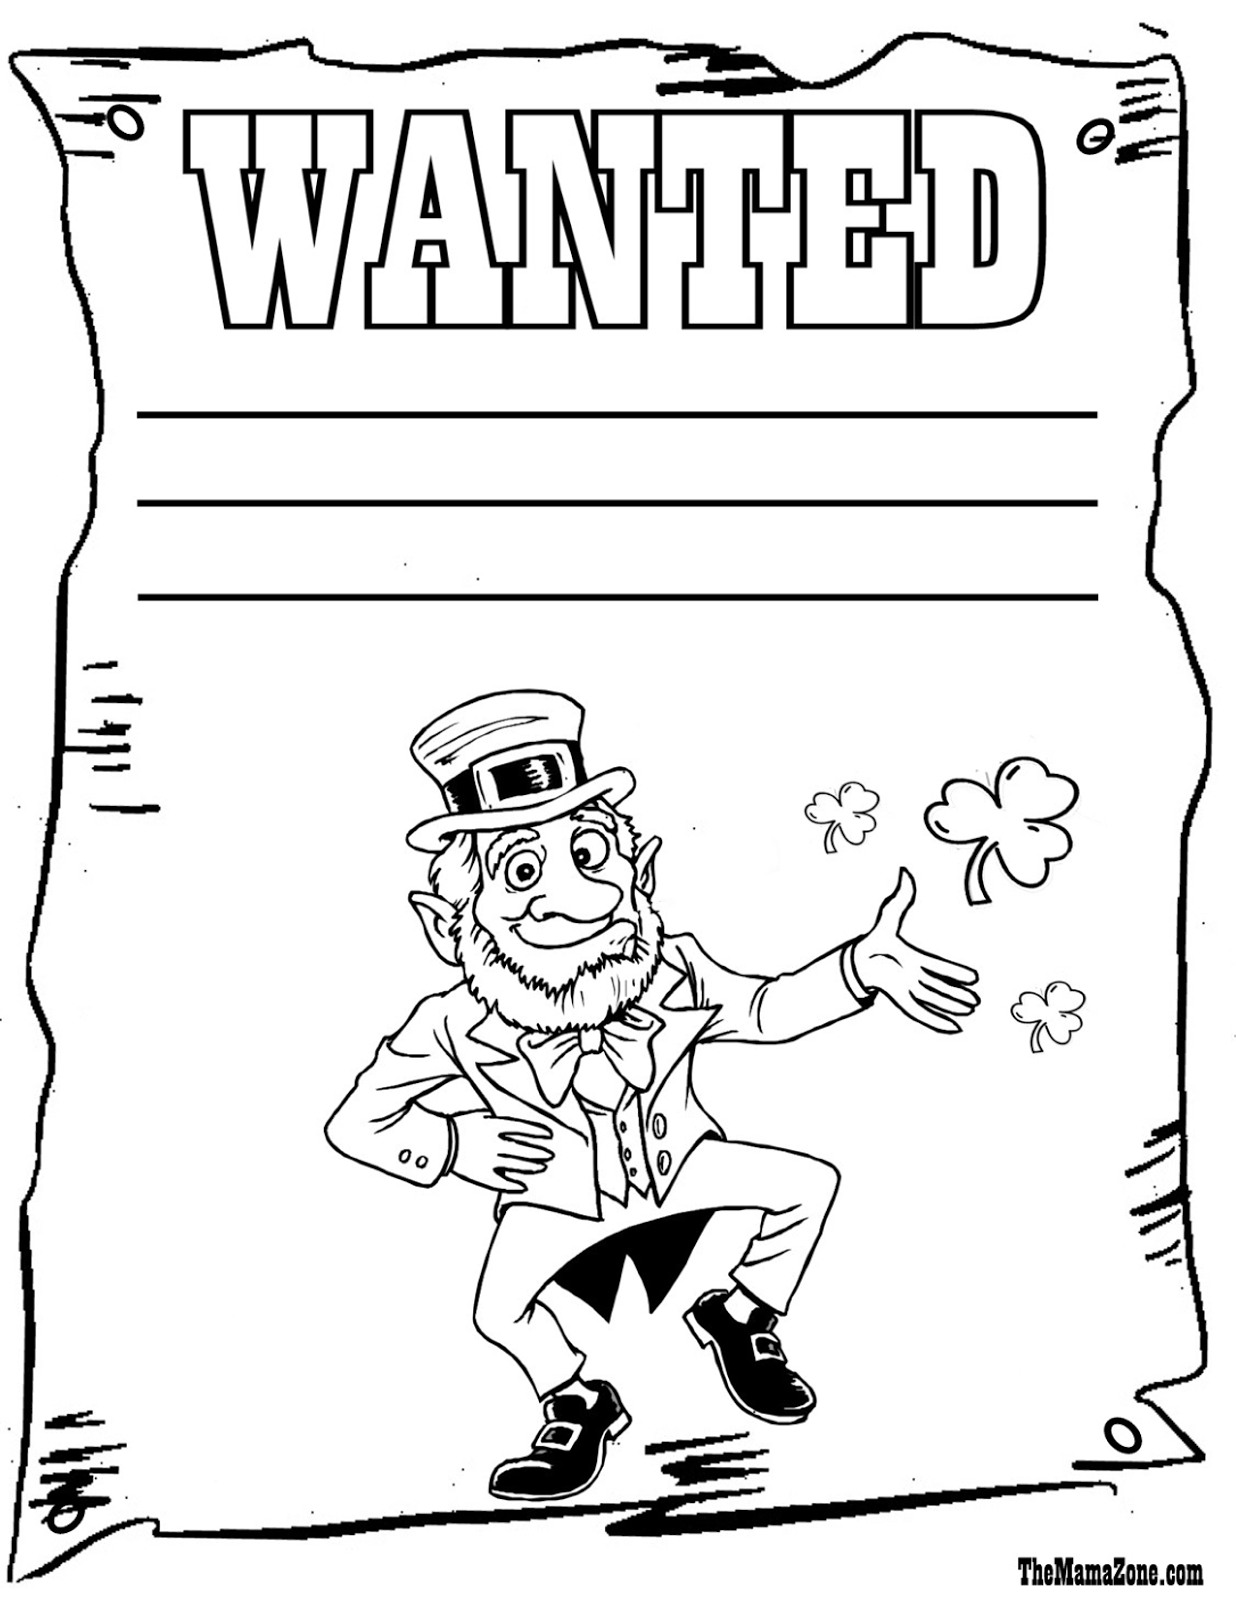 Frugal Mom and Wife: Free Printable ST. PATRICK\'S DAY Coloring Pages!